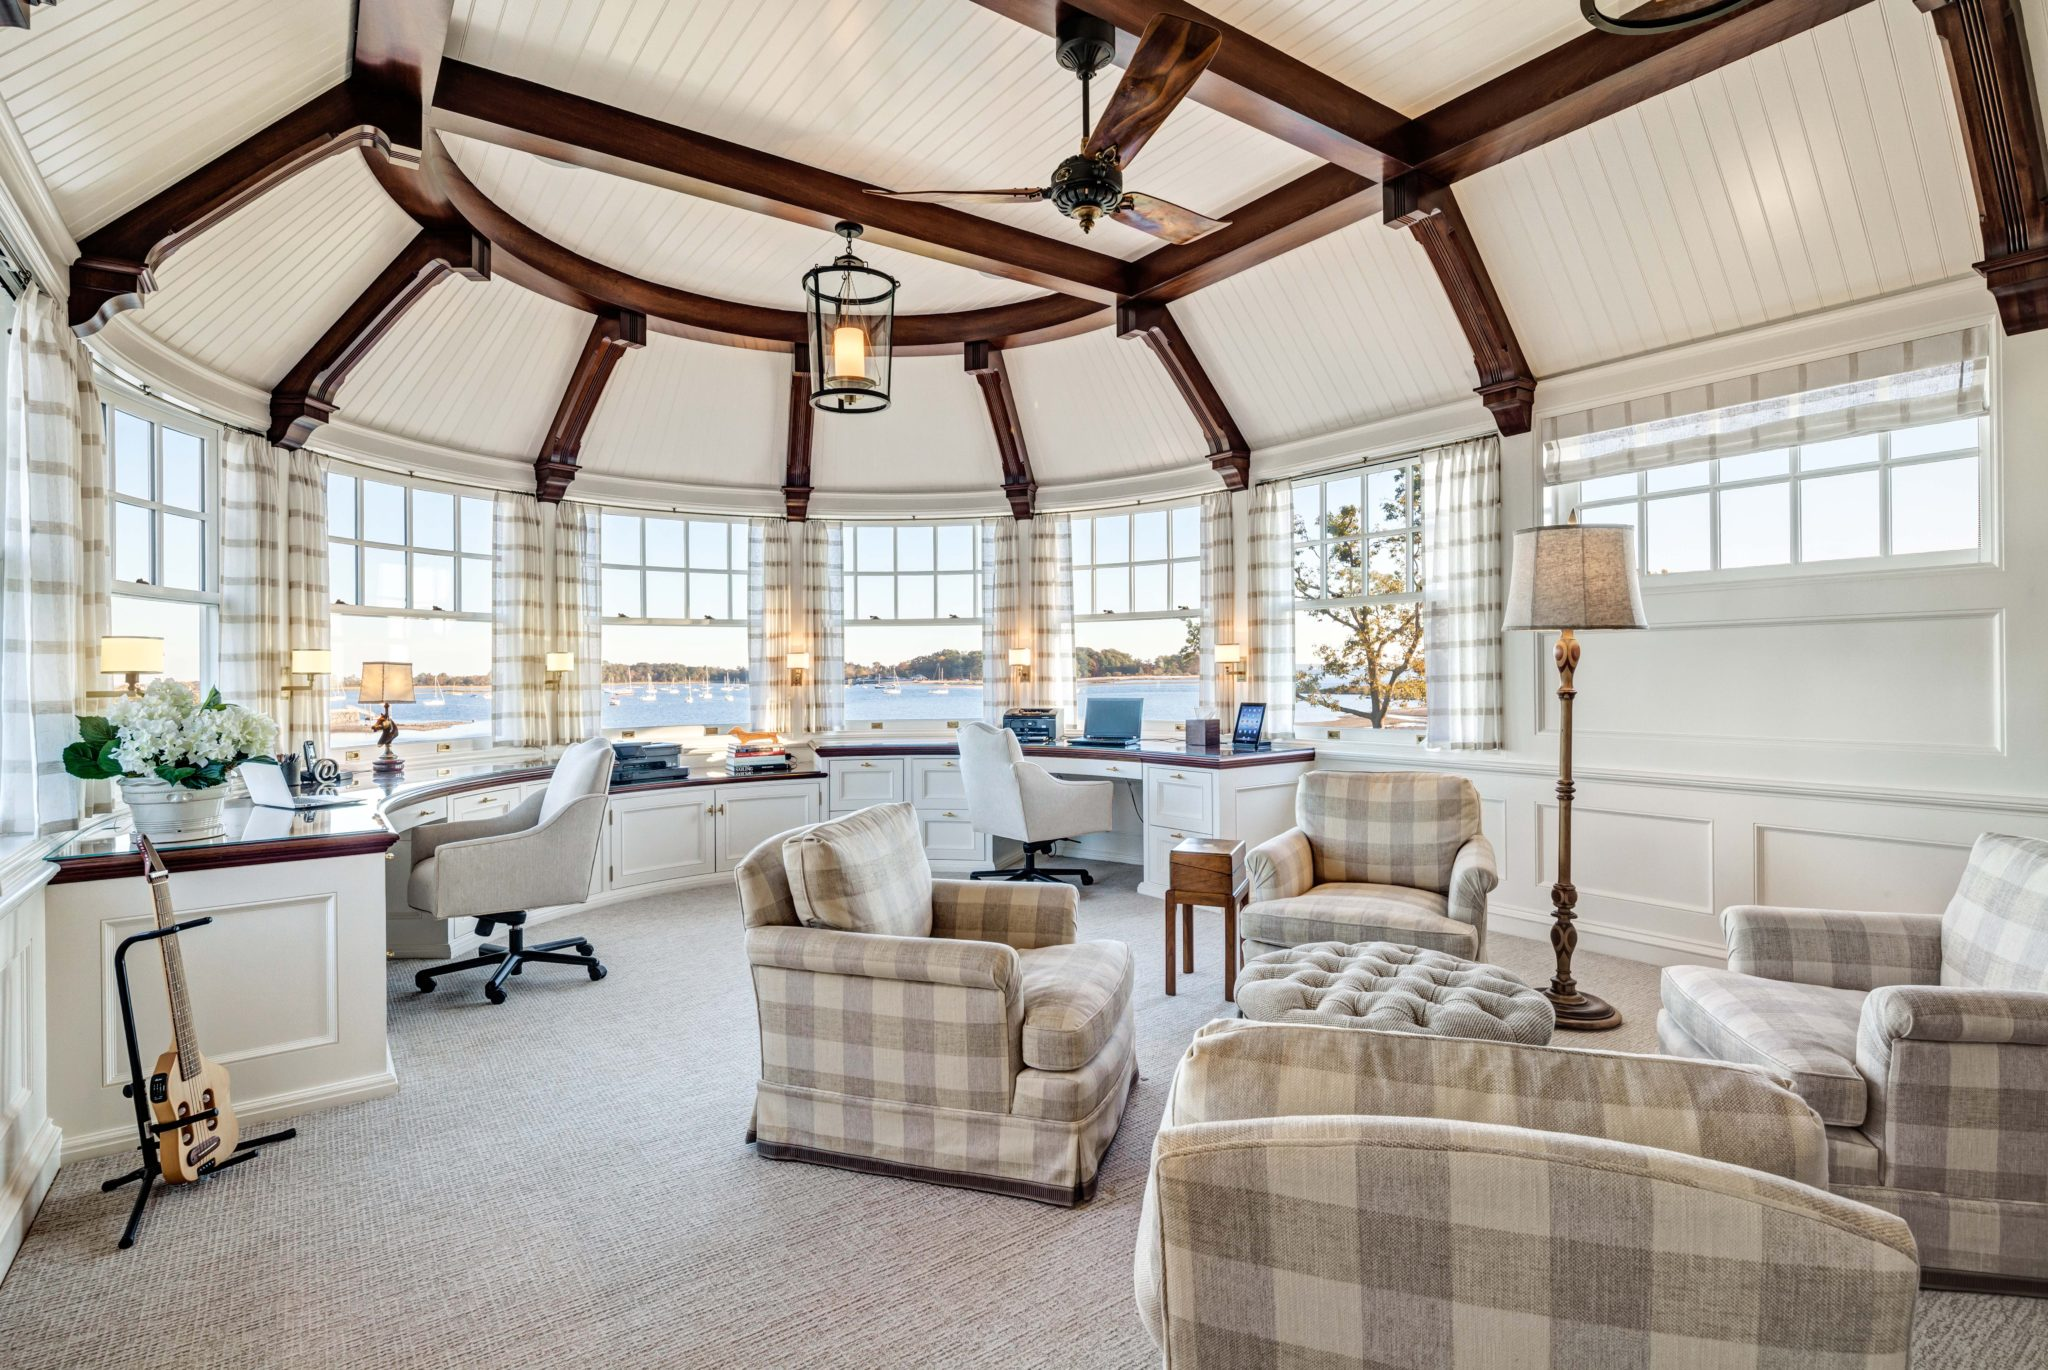 New England Shingle Style Residence Home Office by Charles Hilton Architects